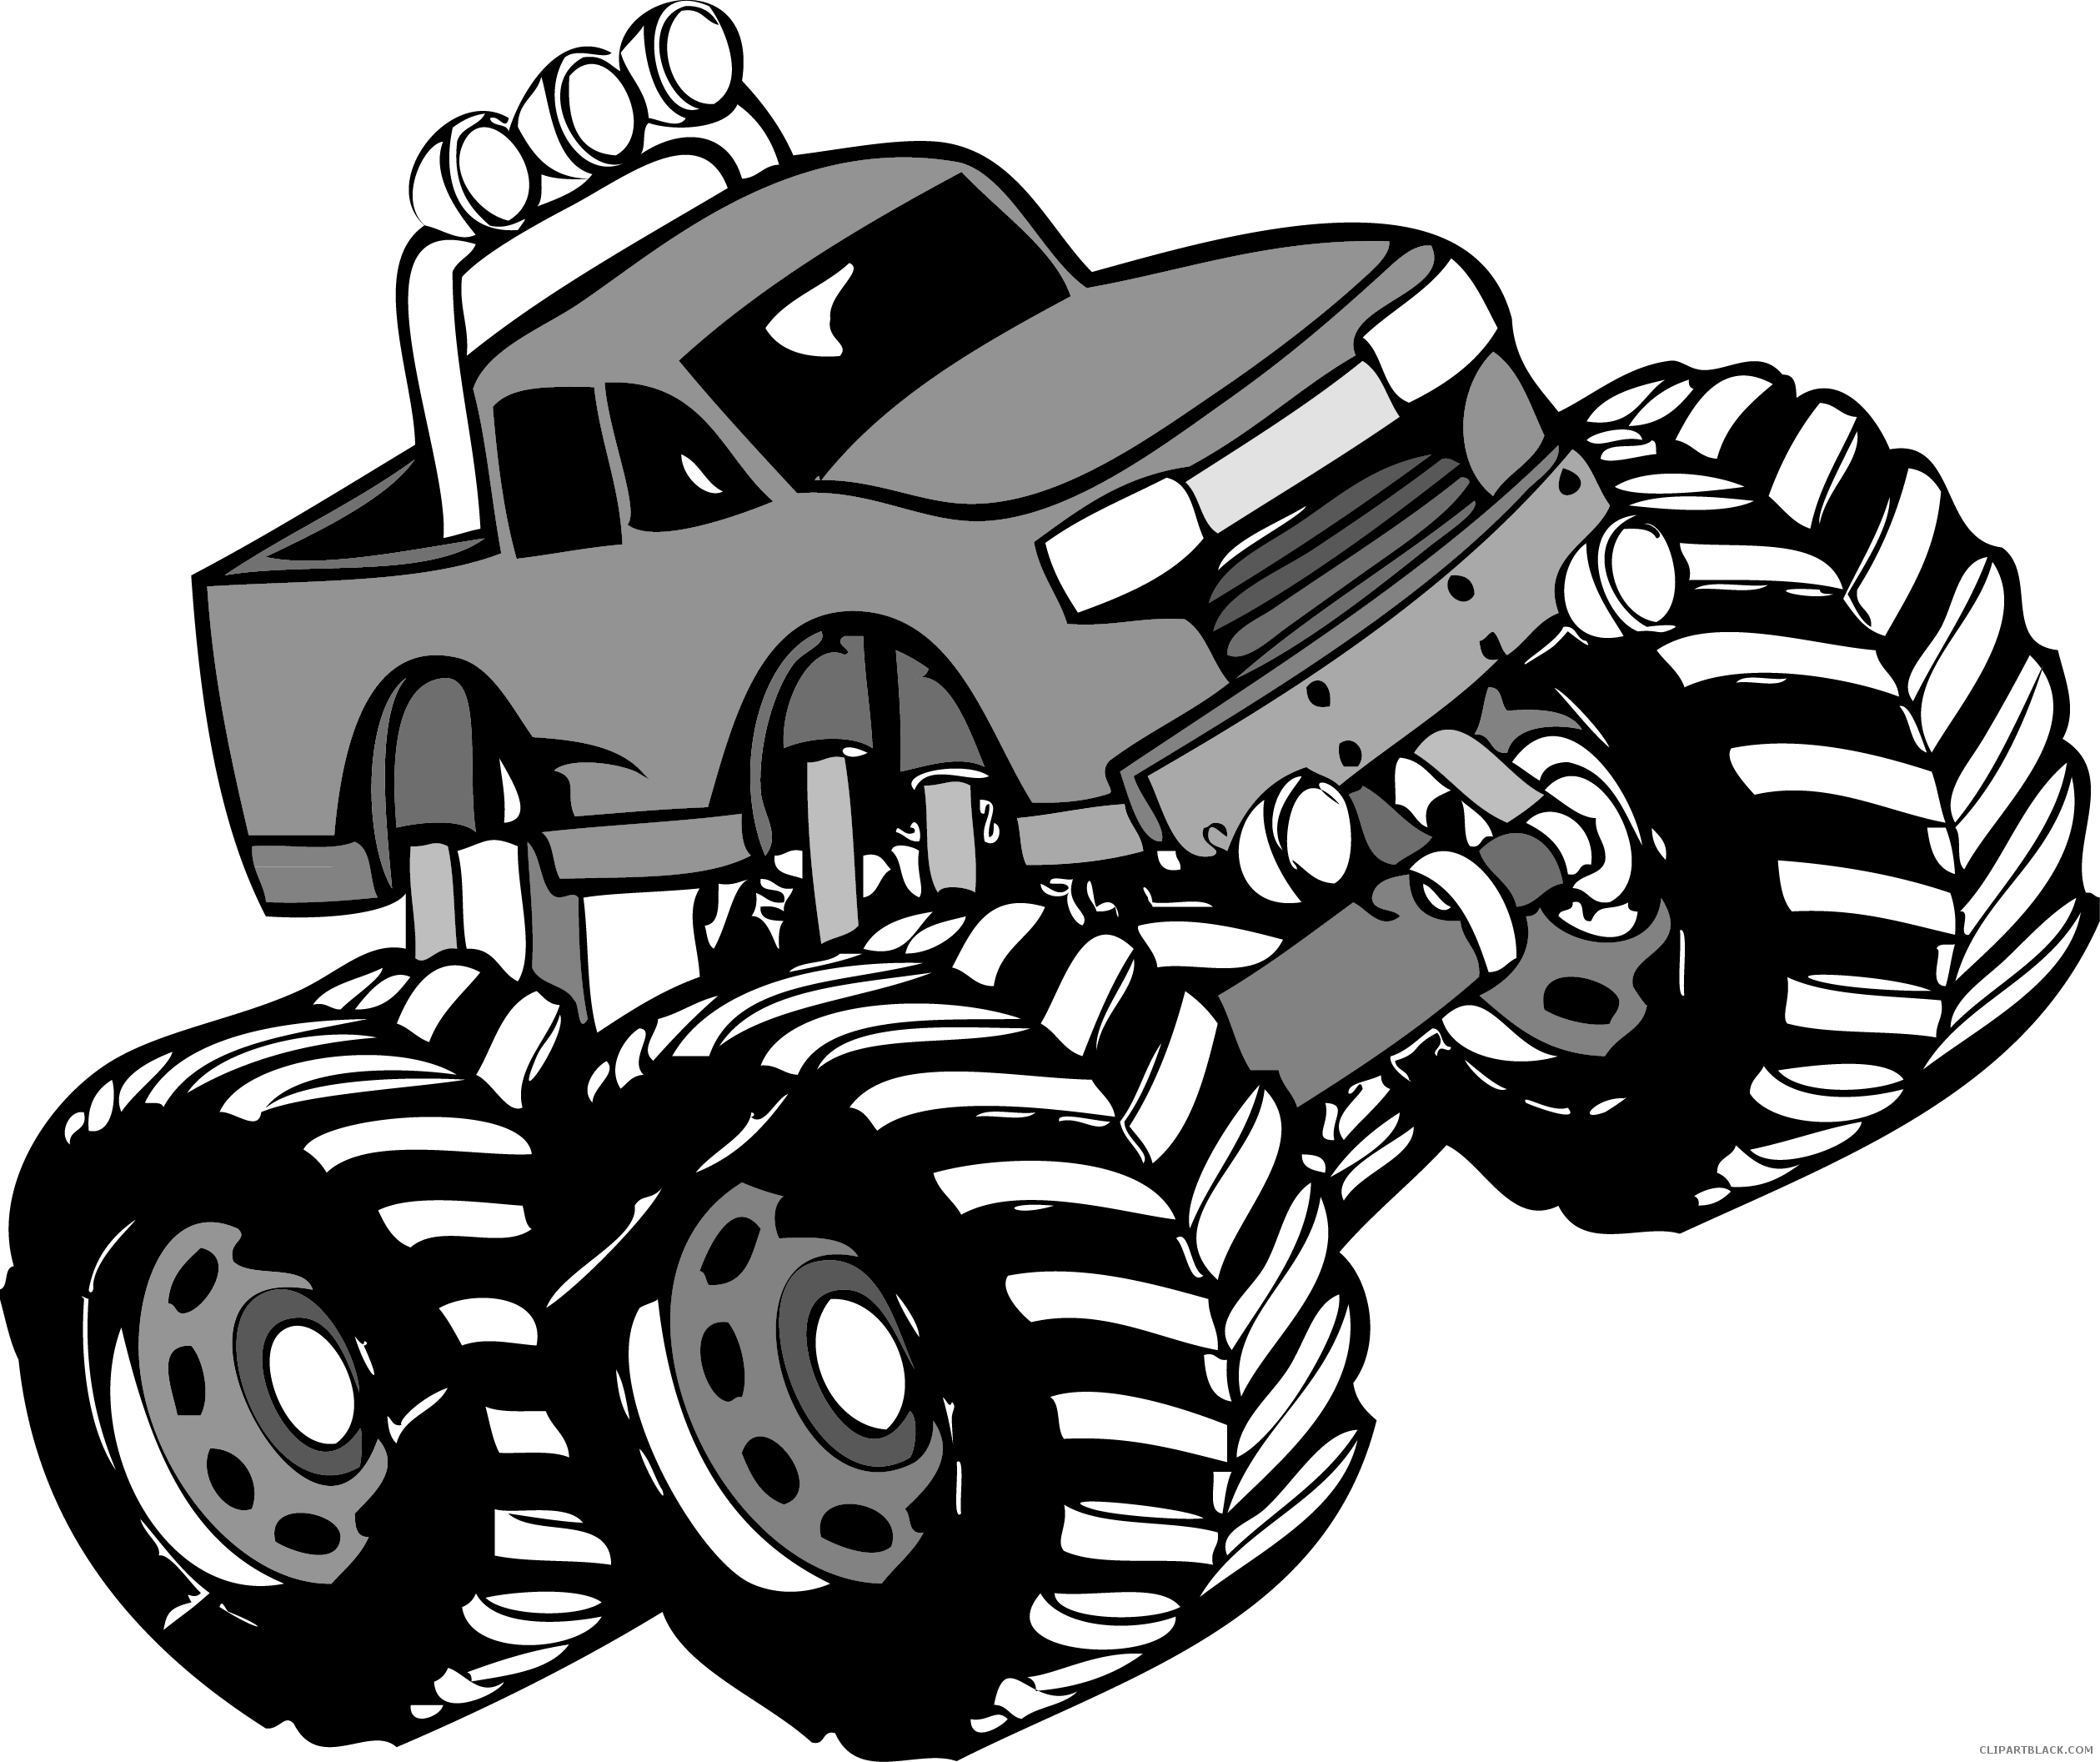 Apple clipart greyscale jpg black and white download Monster Truck Transportation free black white clipart images ... jpg black and white download